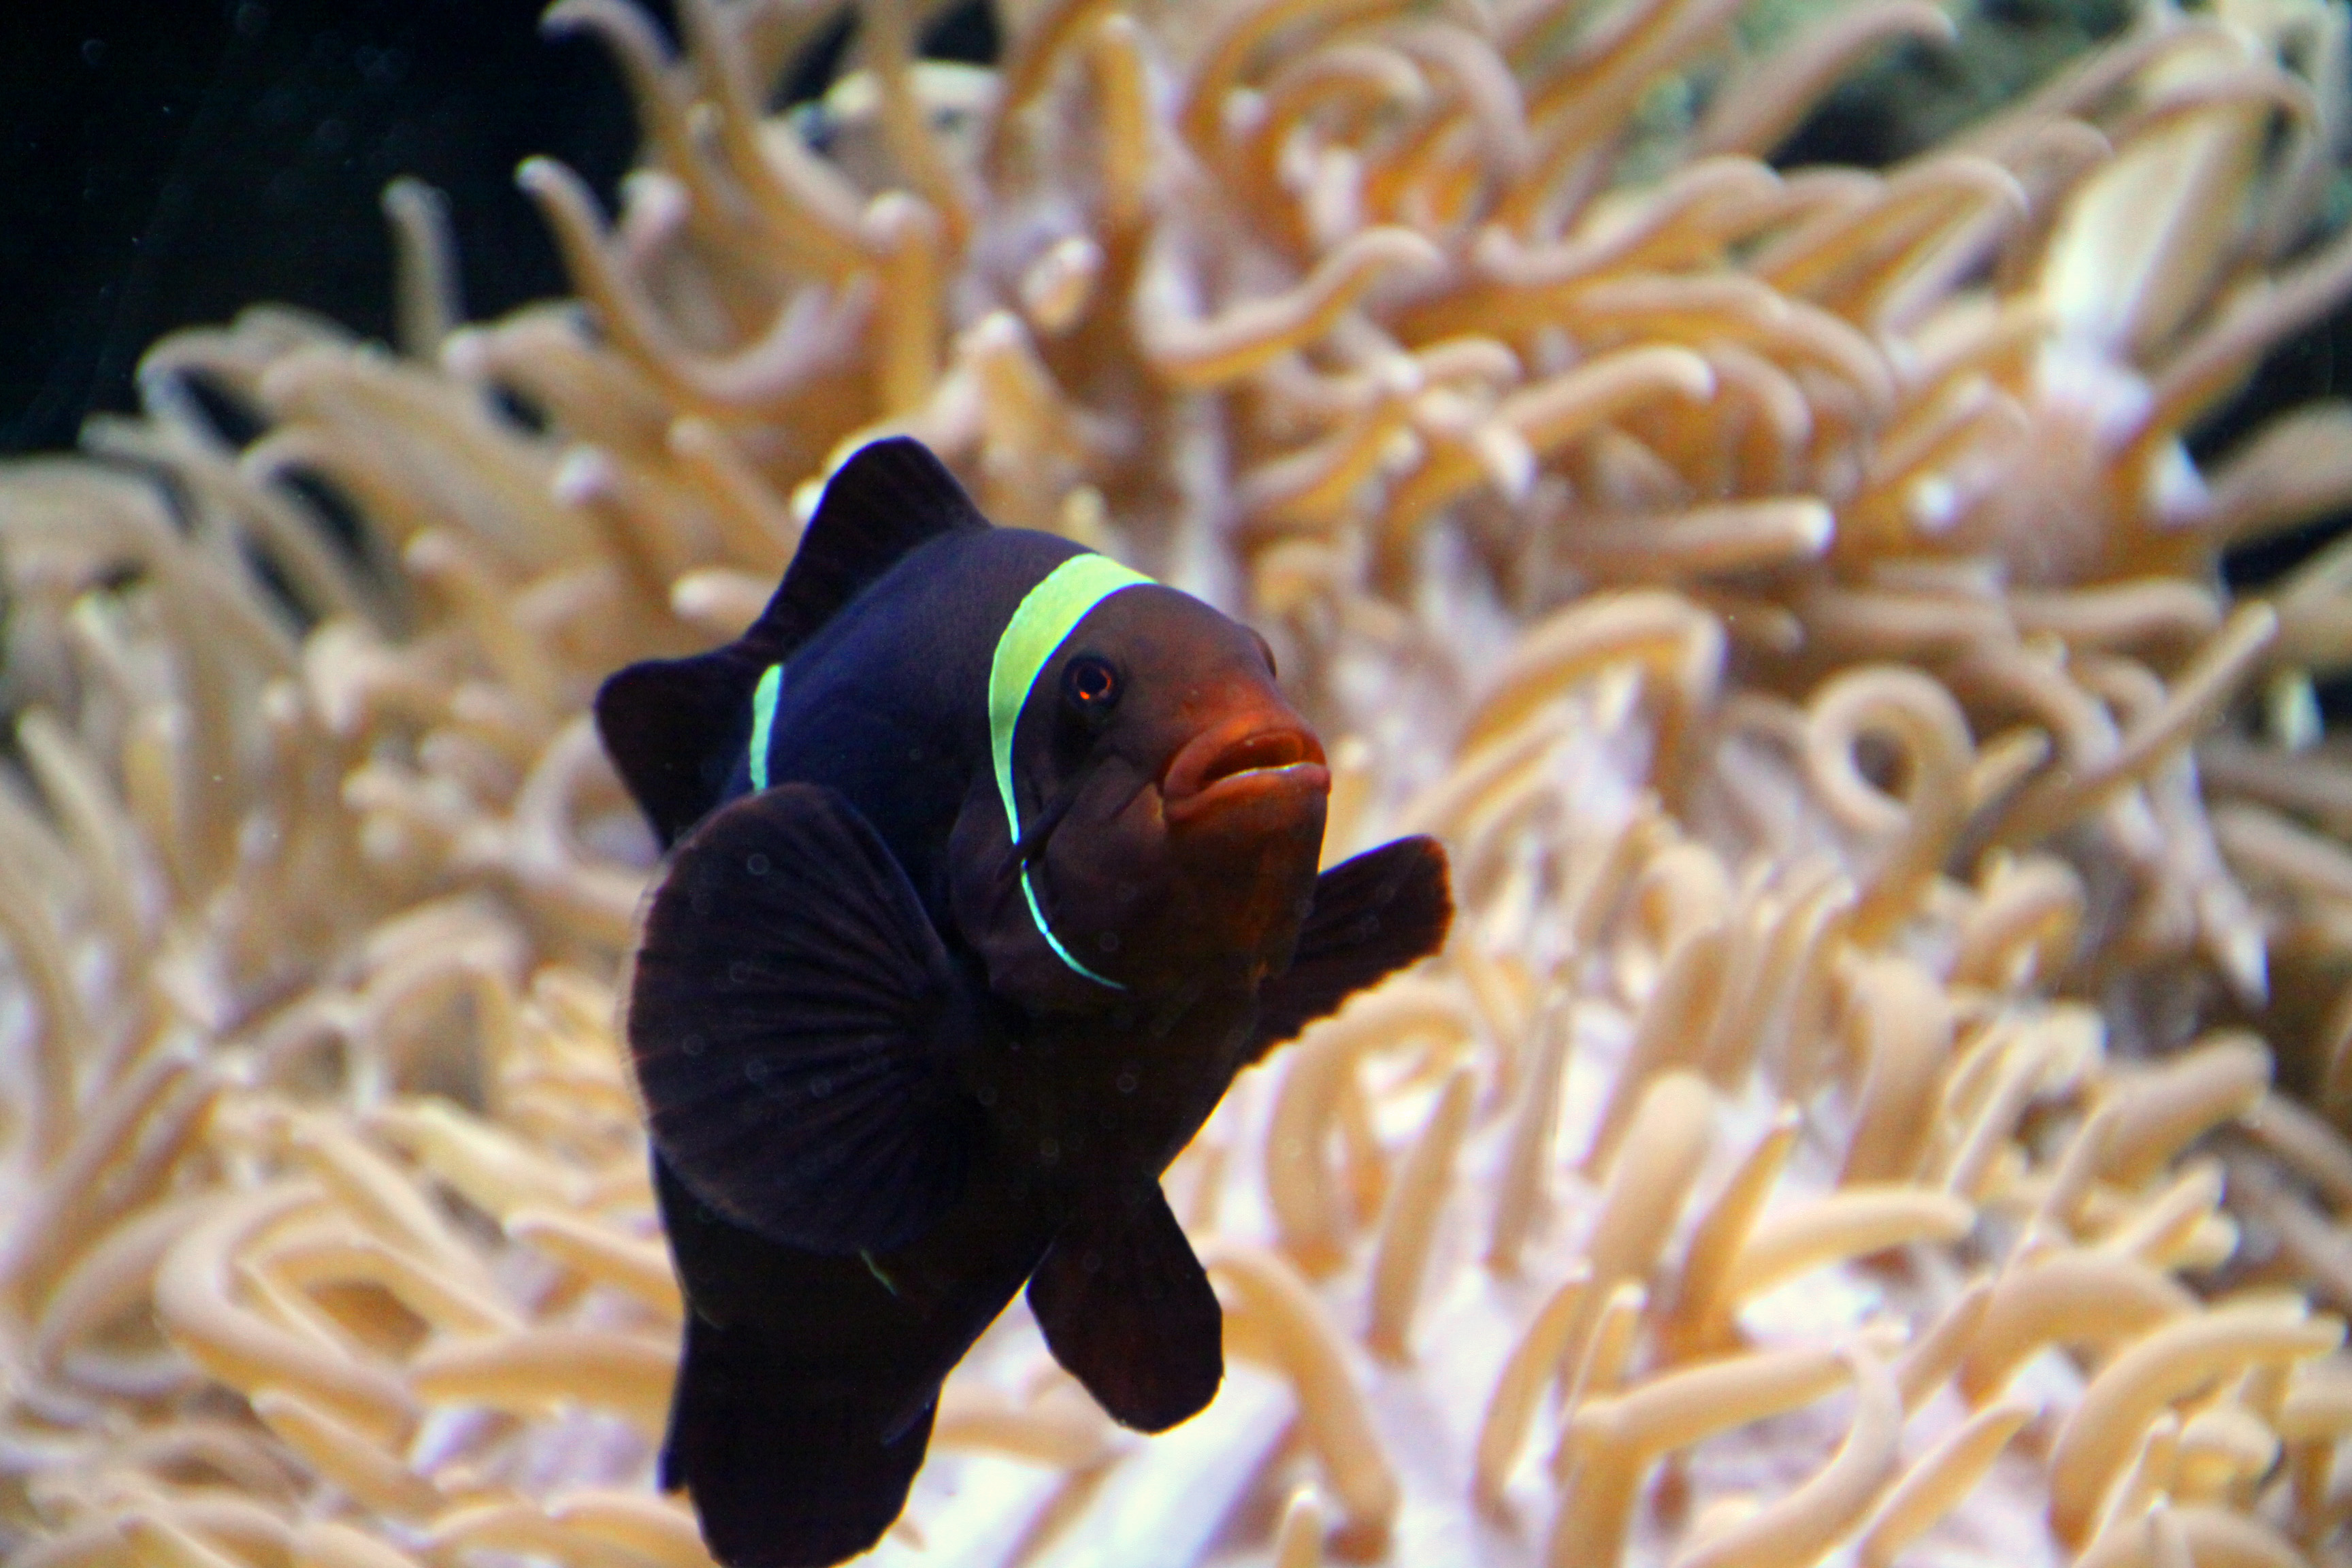 Black clownfish anemone for Clown fish facts